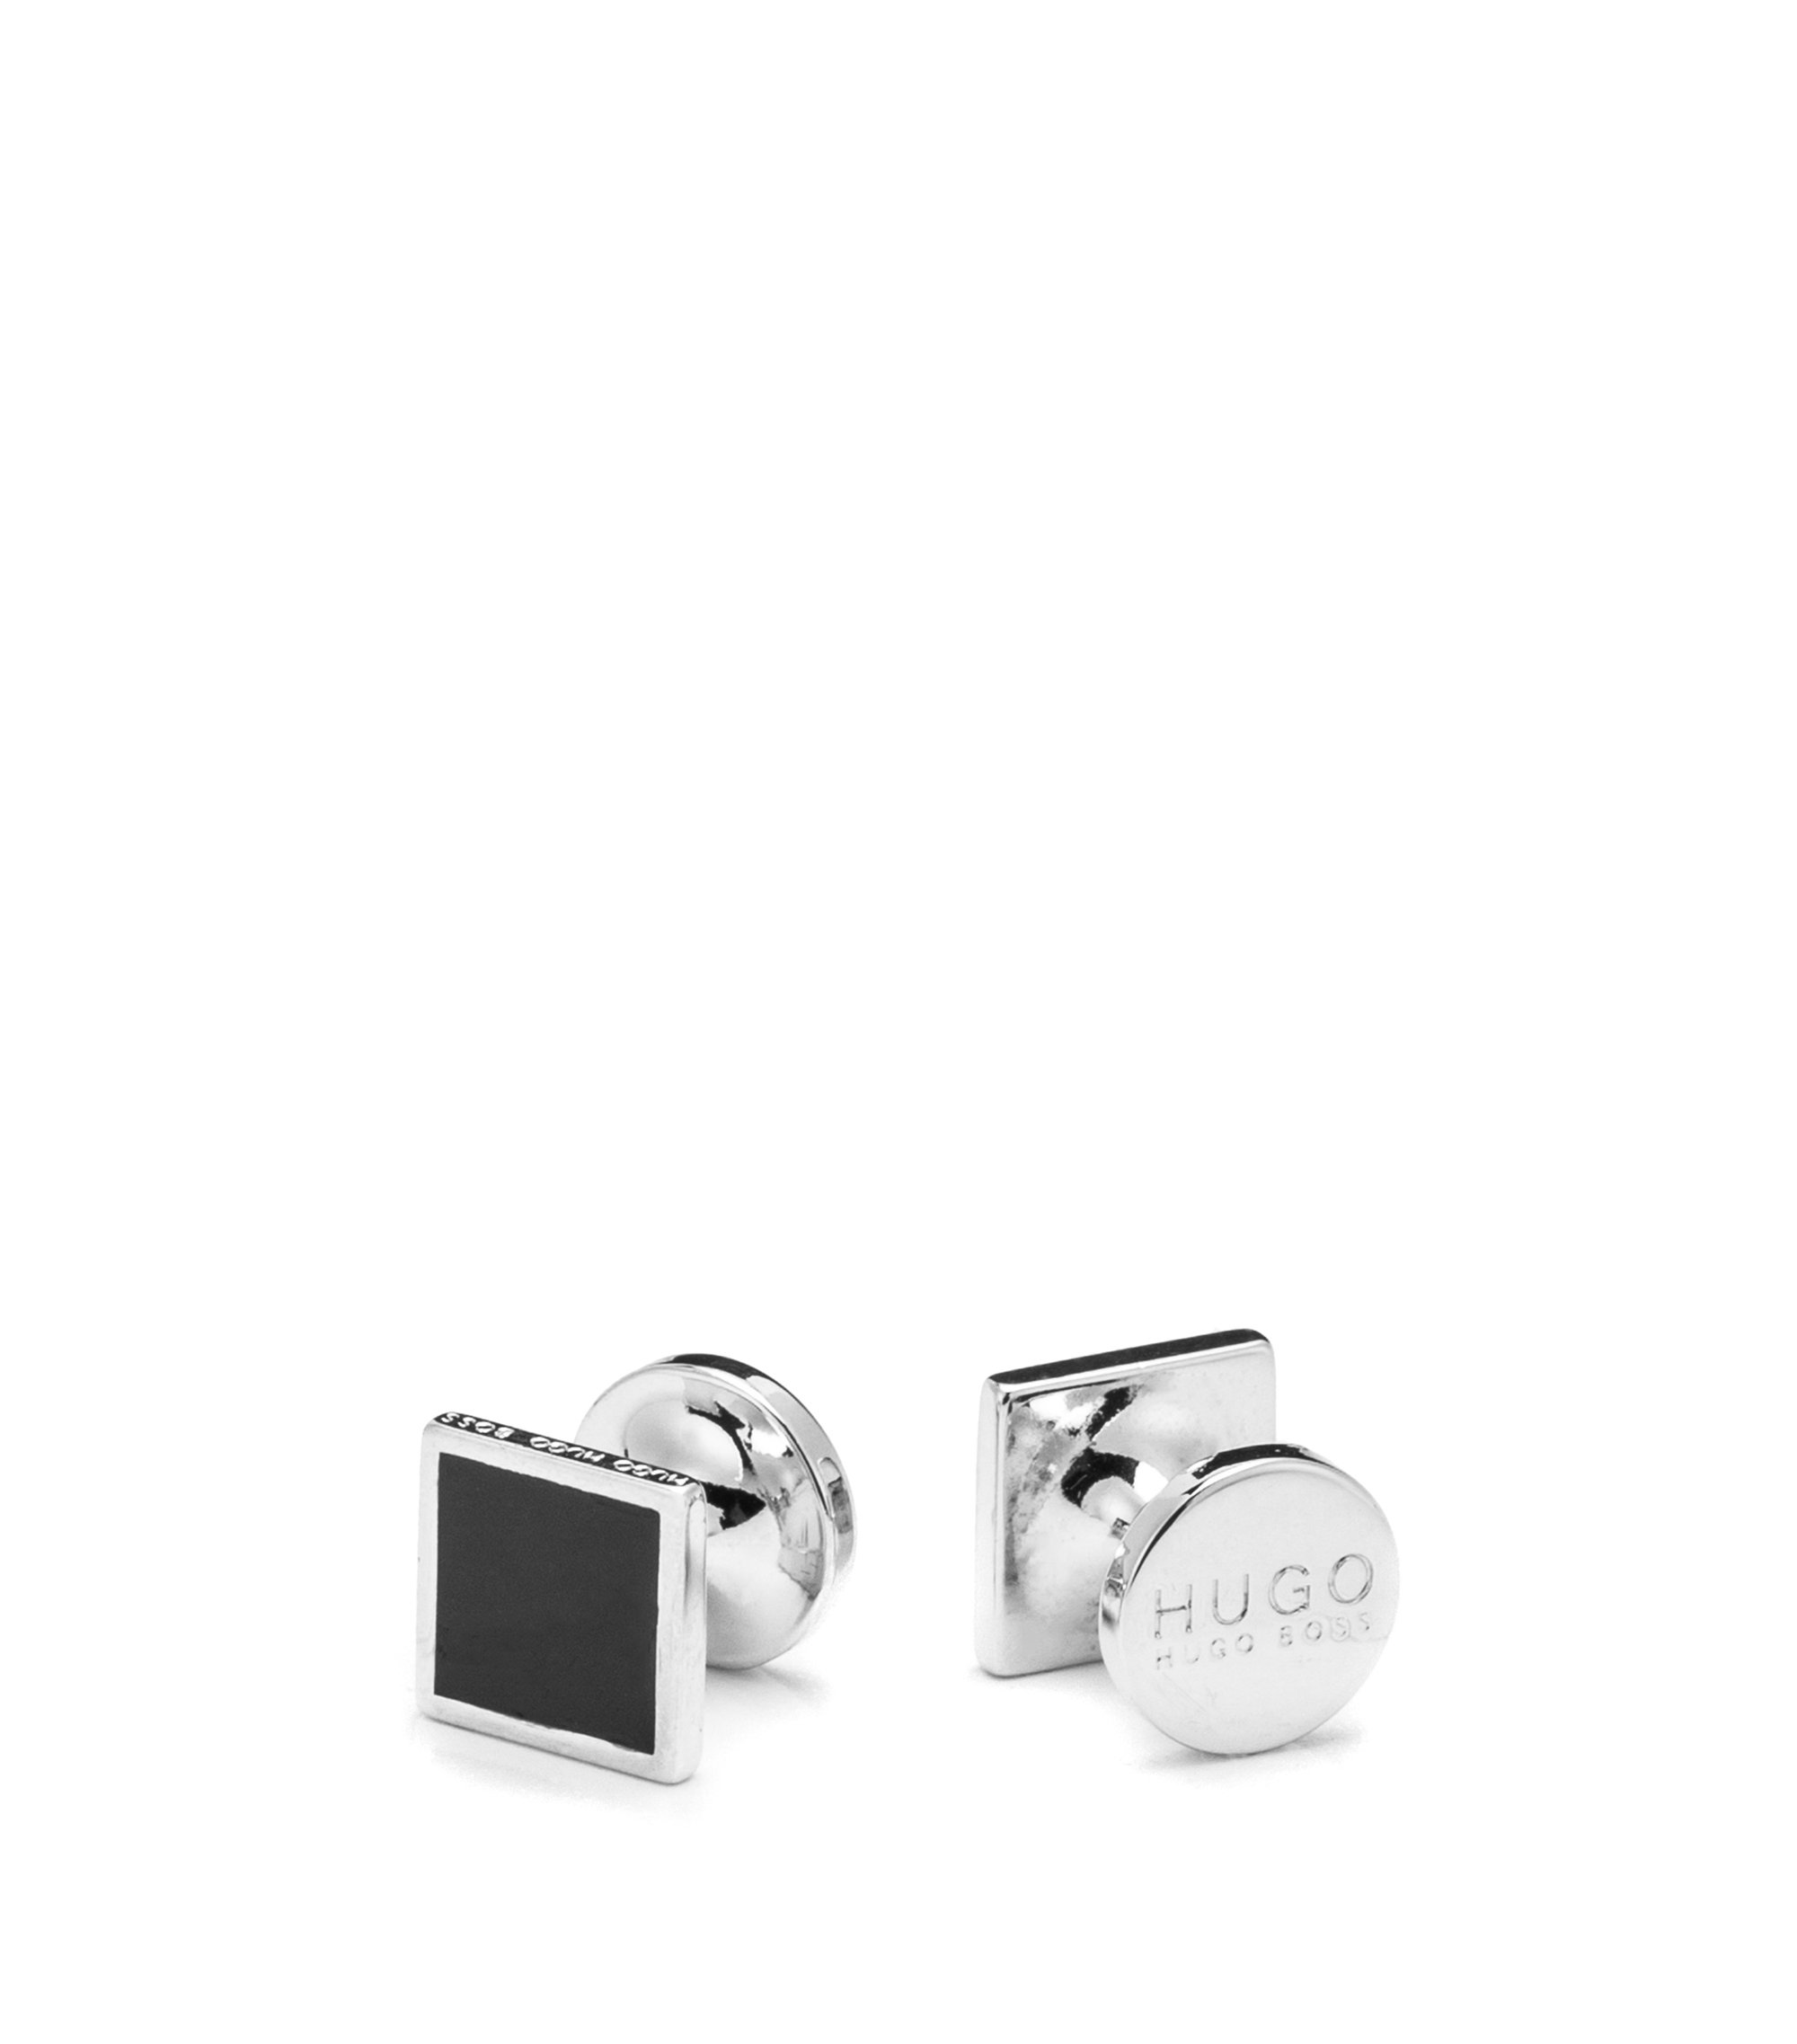 Square cufflinks with enamel detail, Black